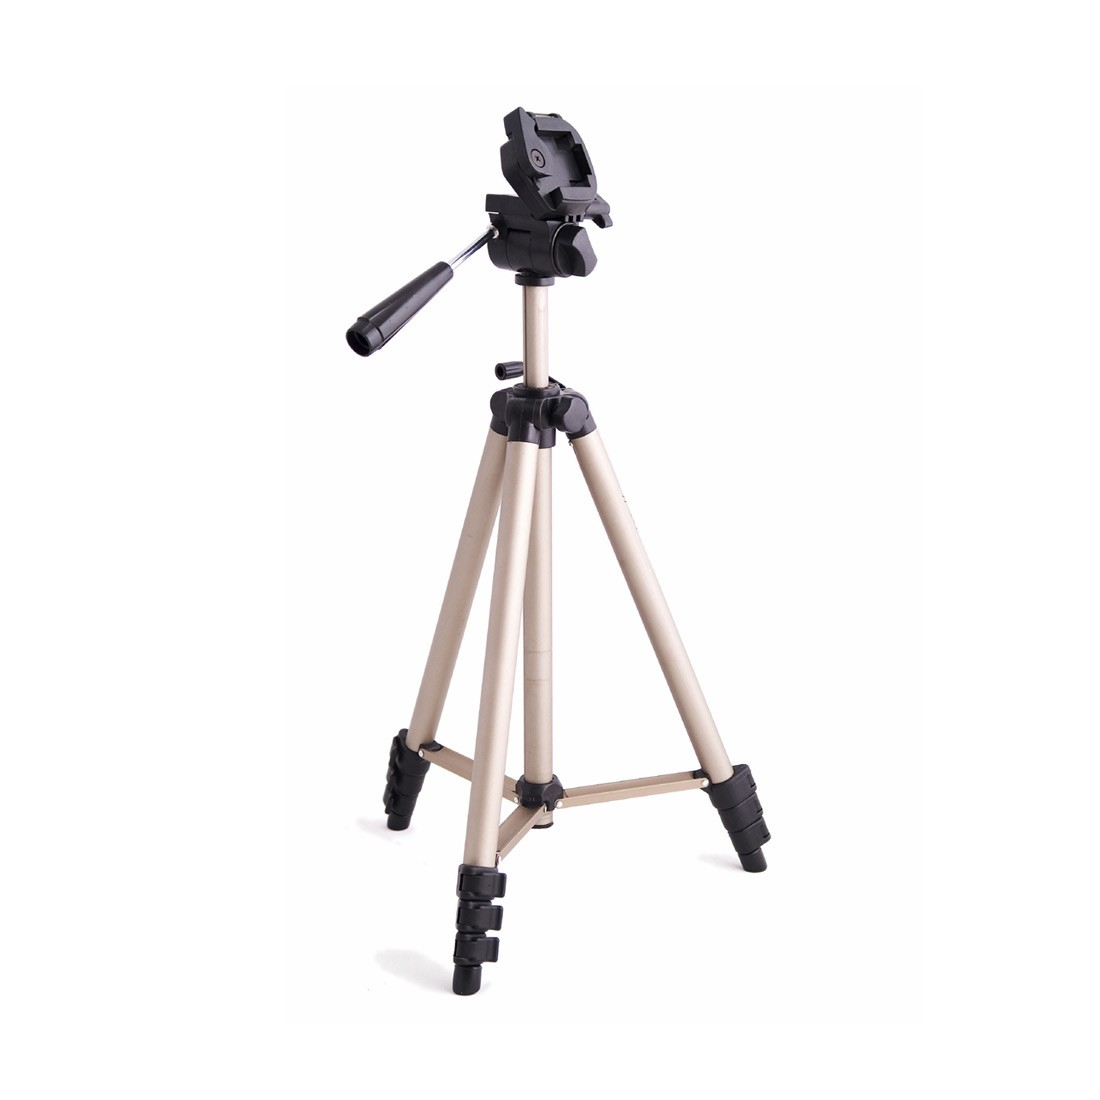 Photo of a tripod with camera mount available for checkout.